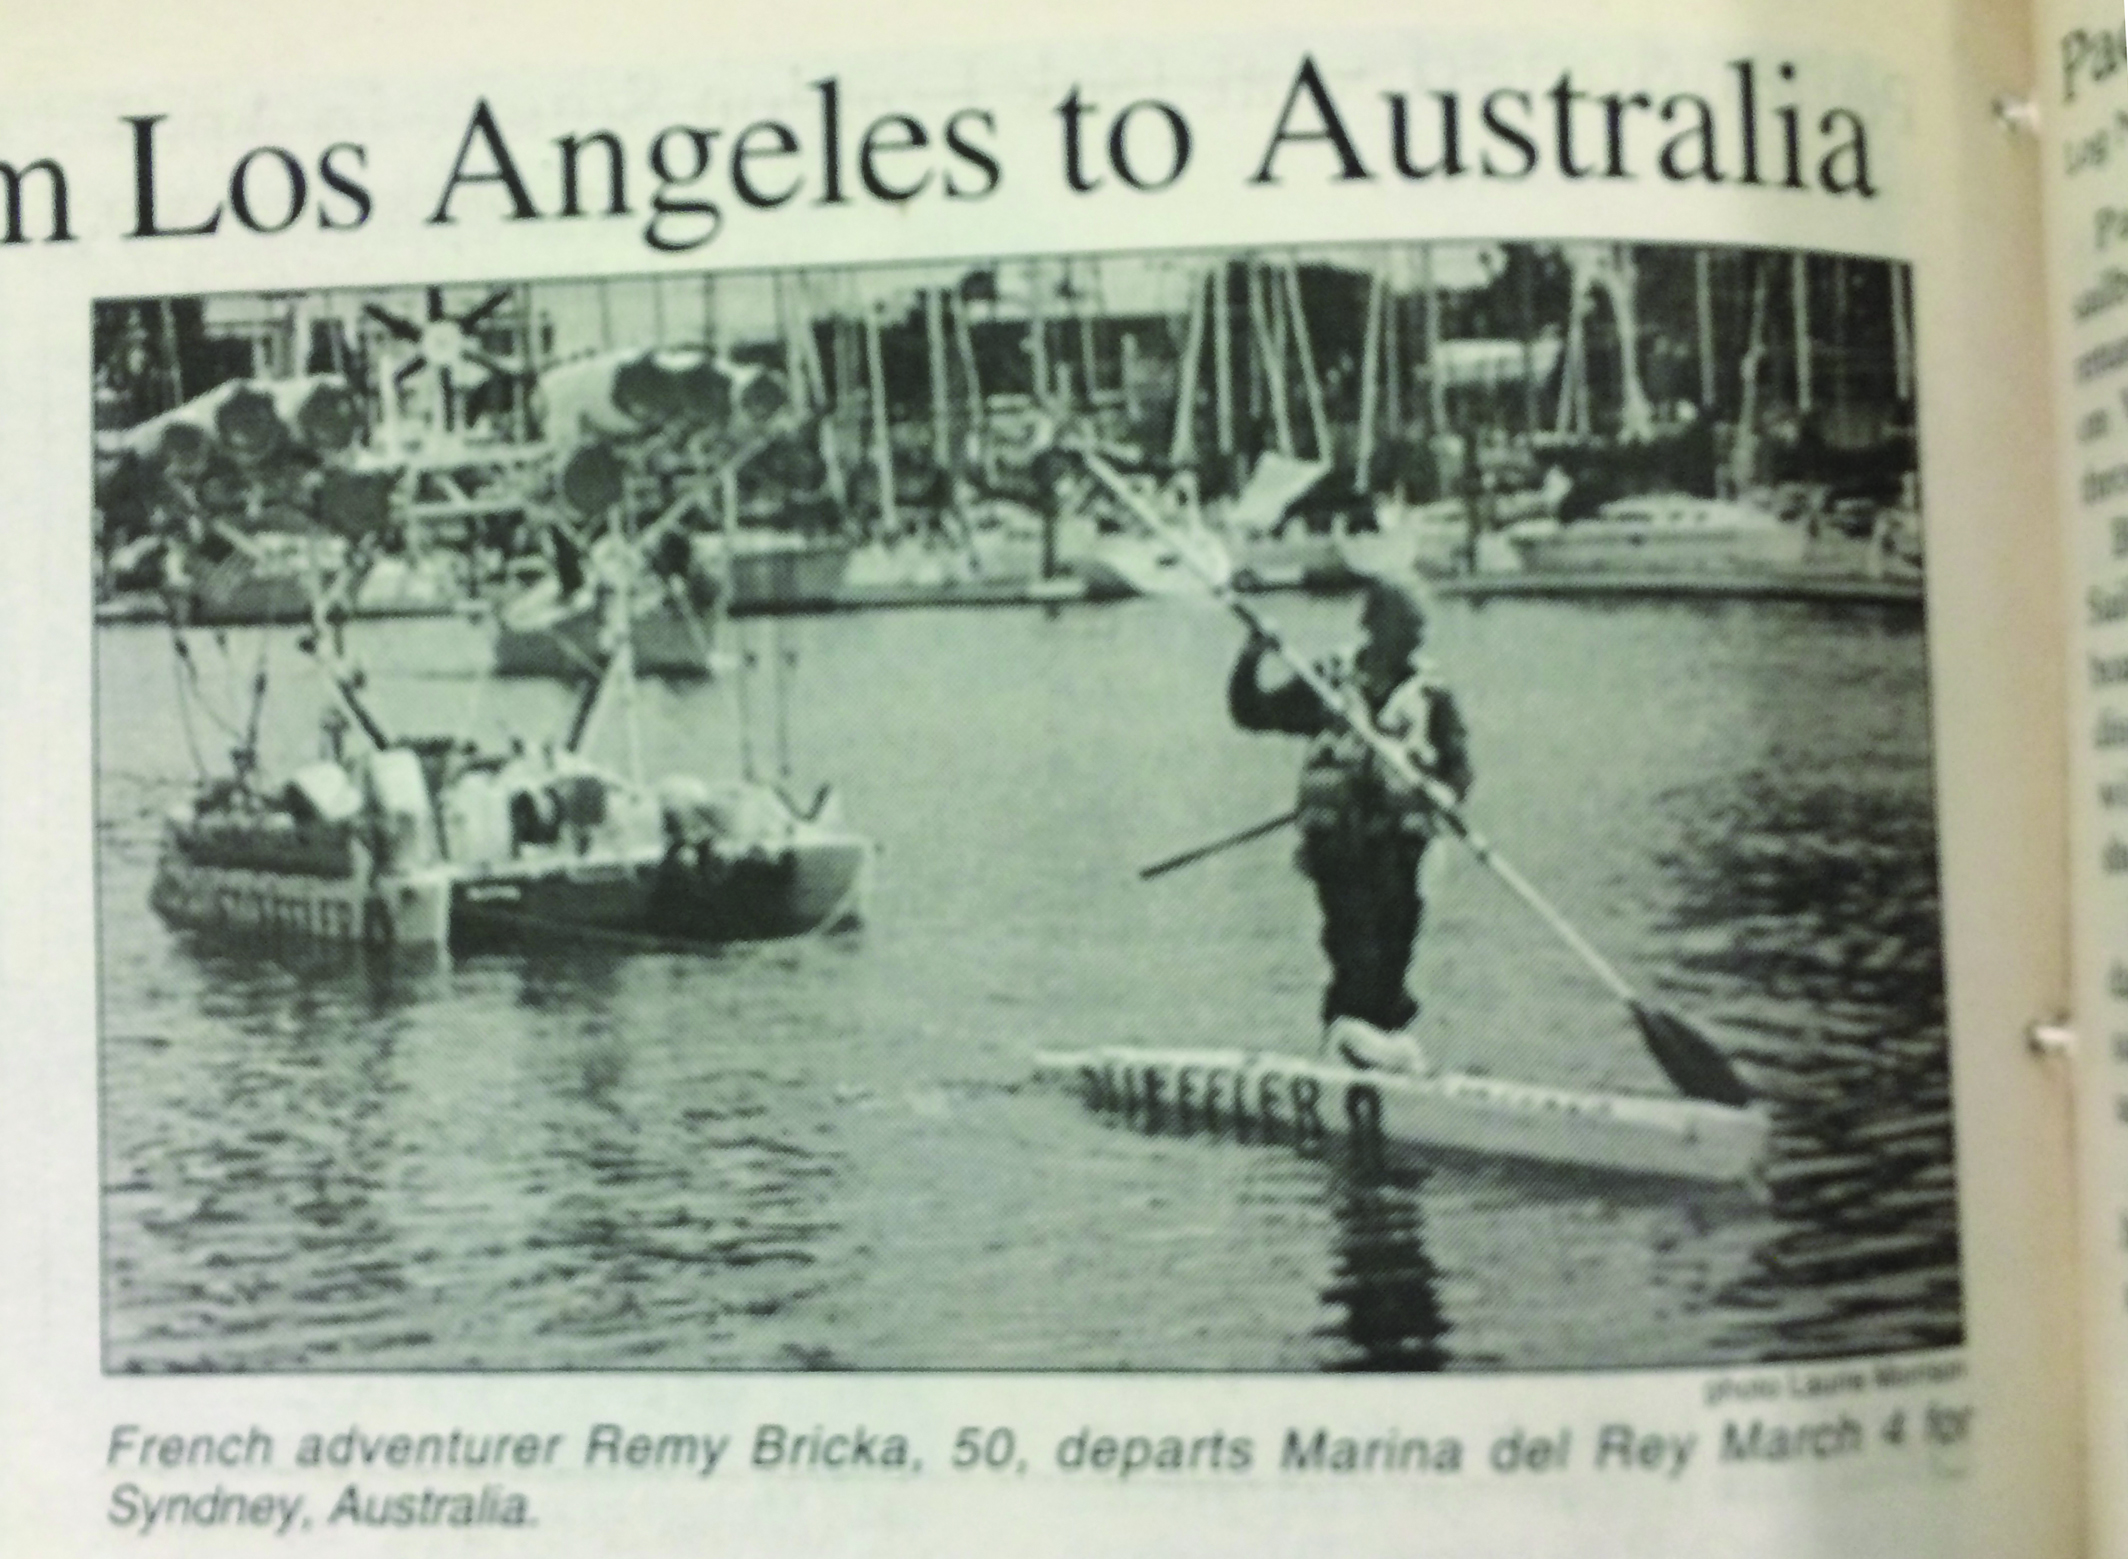 2000: Man to walk on water from Los Angeles to Australia